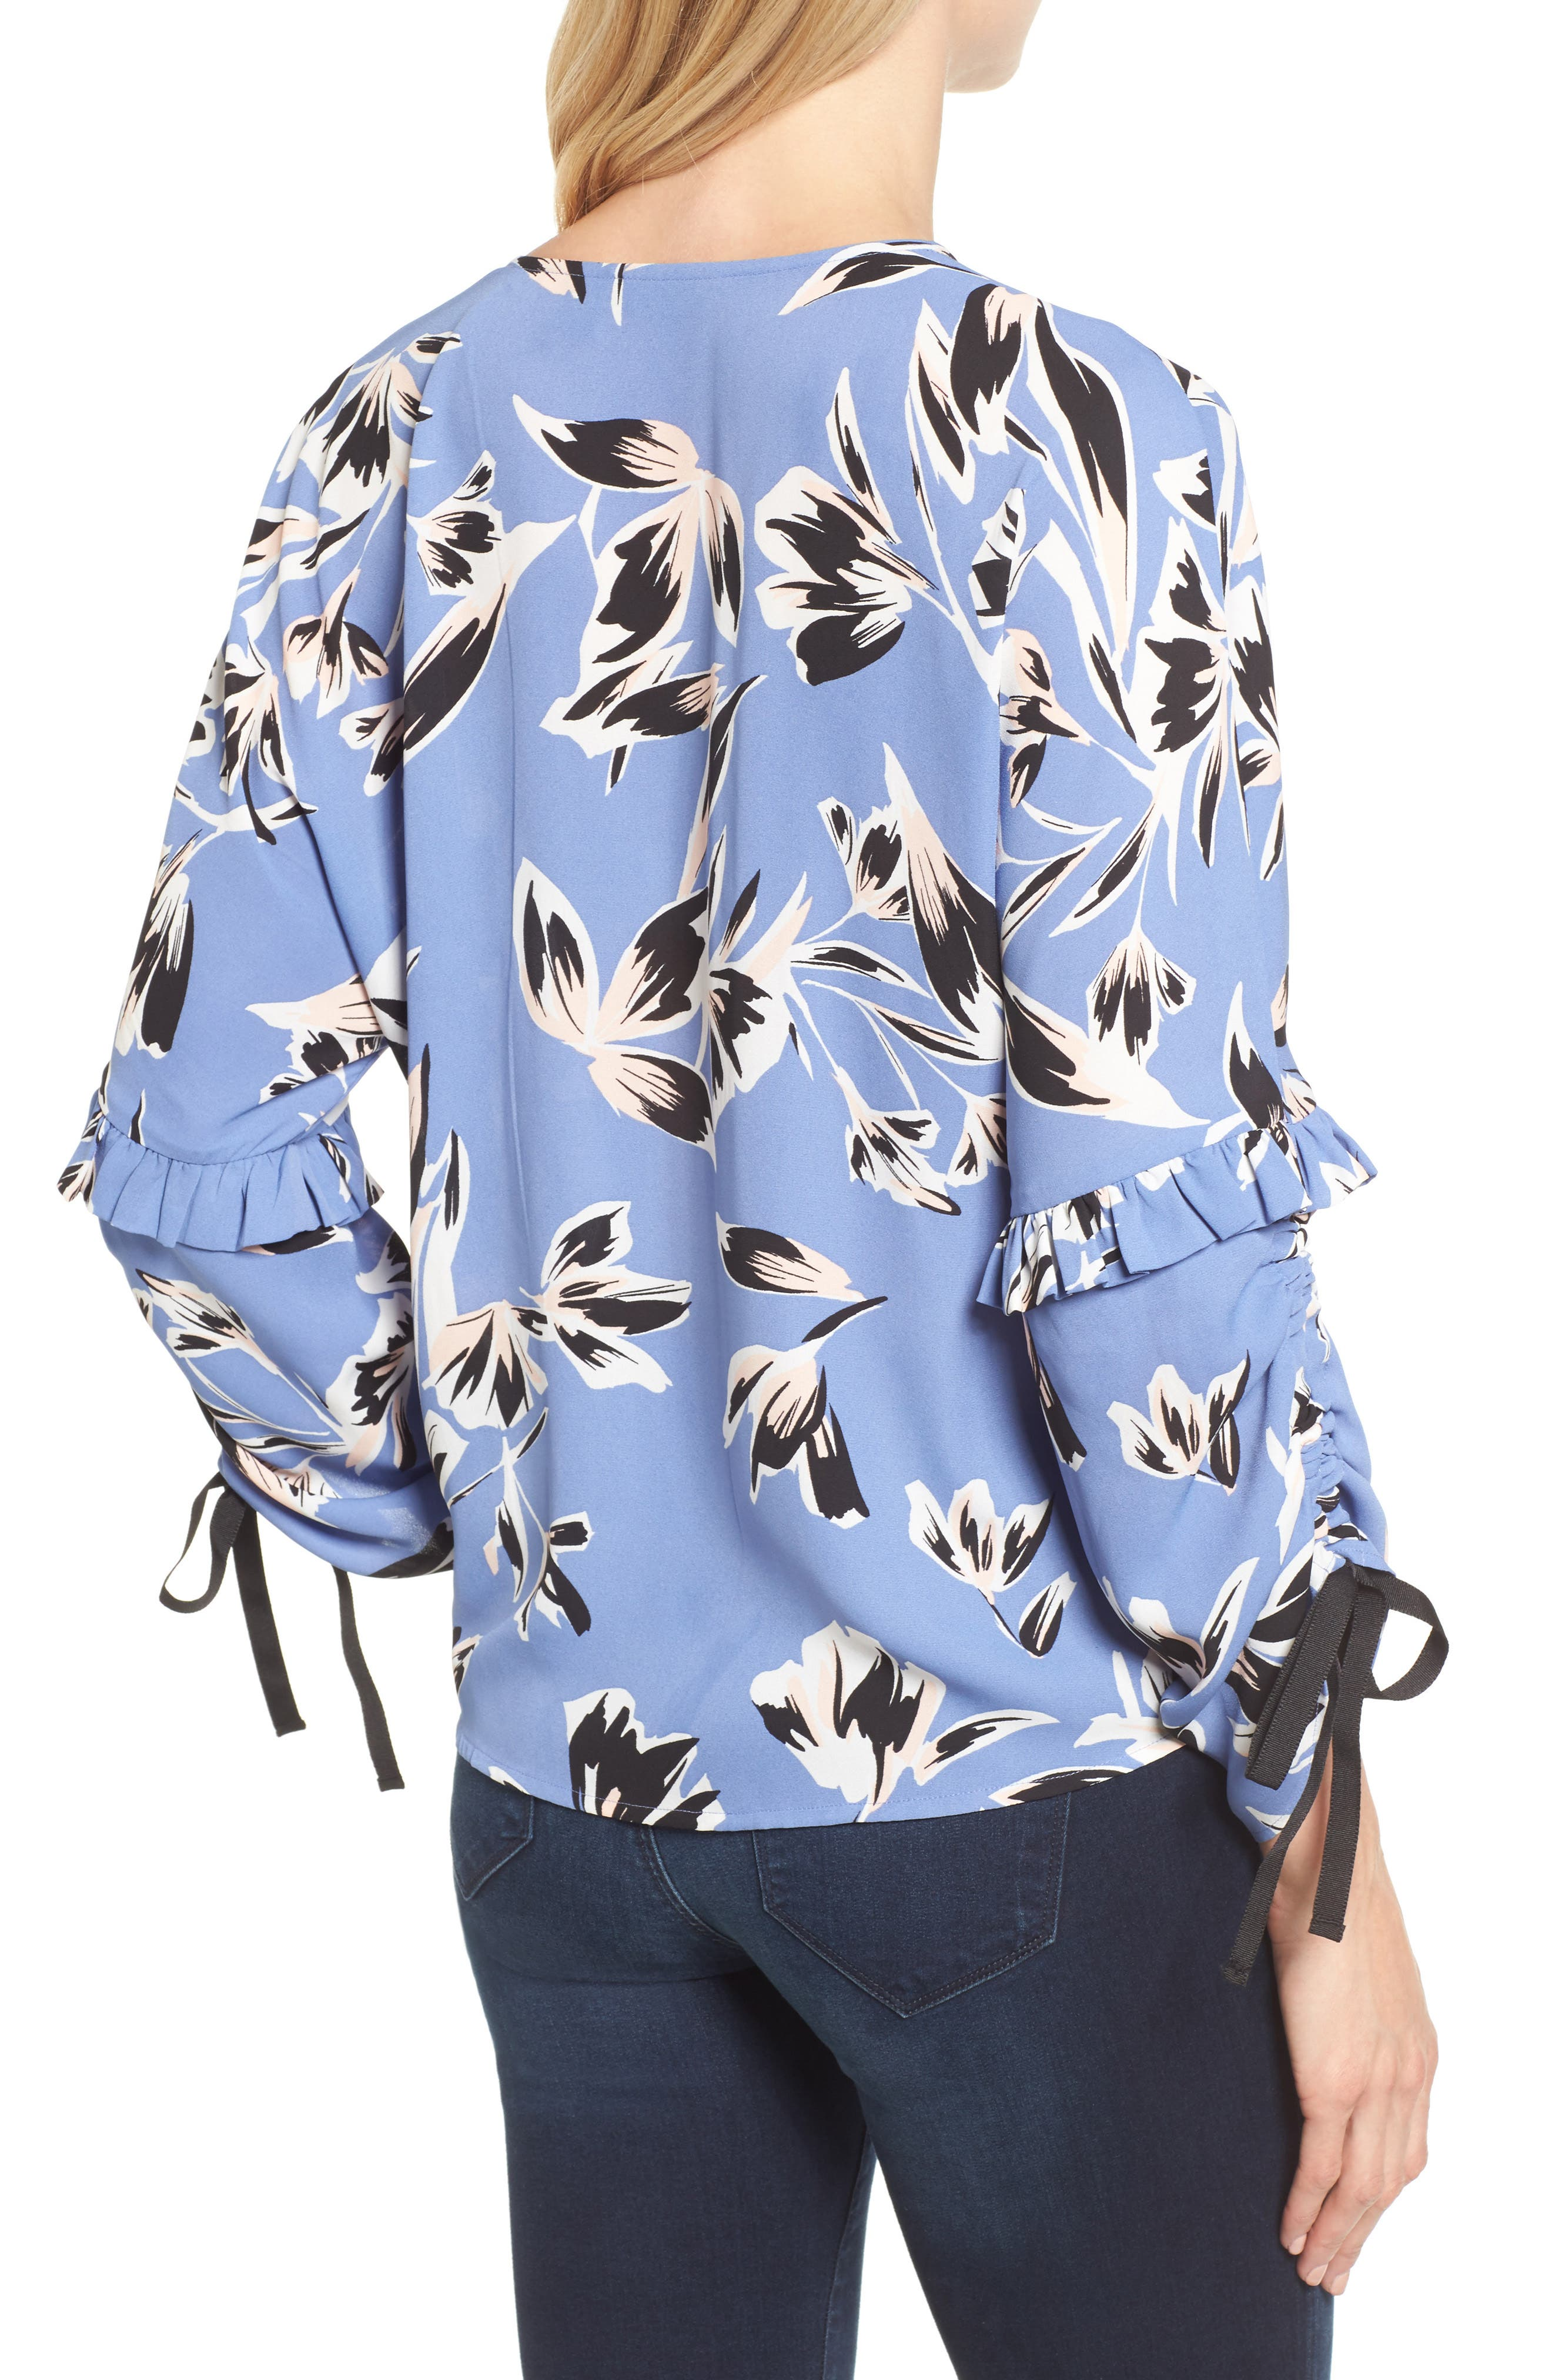 Ruched Tie Sleeve Top,                             Alternate thumbnail 2, color,                             Blue- Pink Sketch Floral